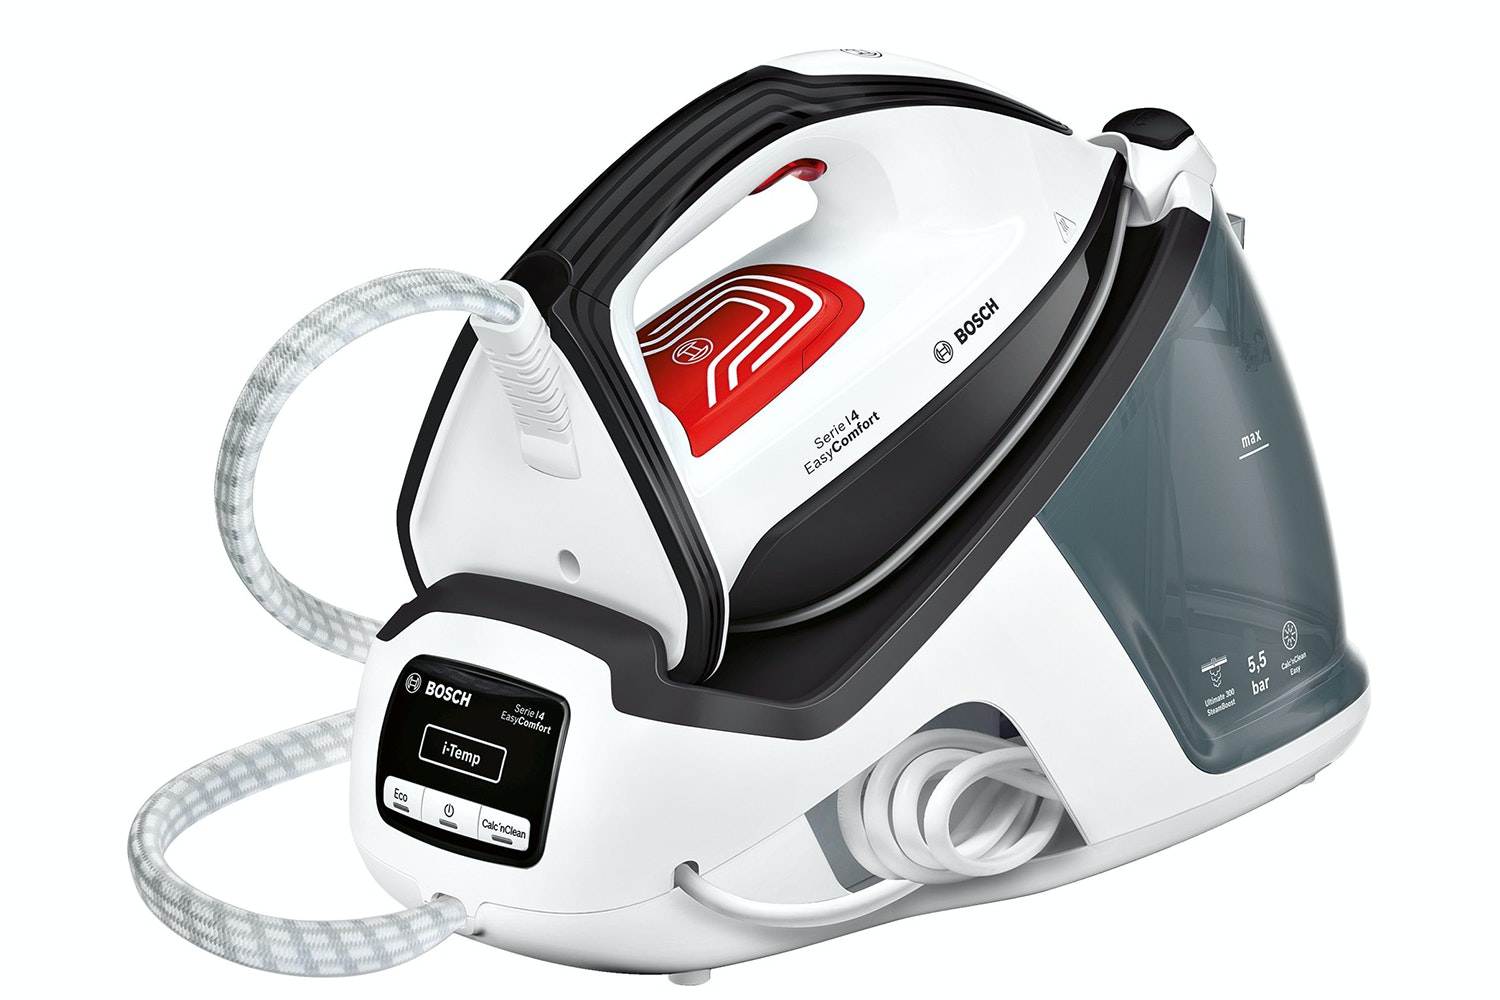 Bosch EasyComfort 2400W Steam Generator Iron | TDS4070GB